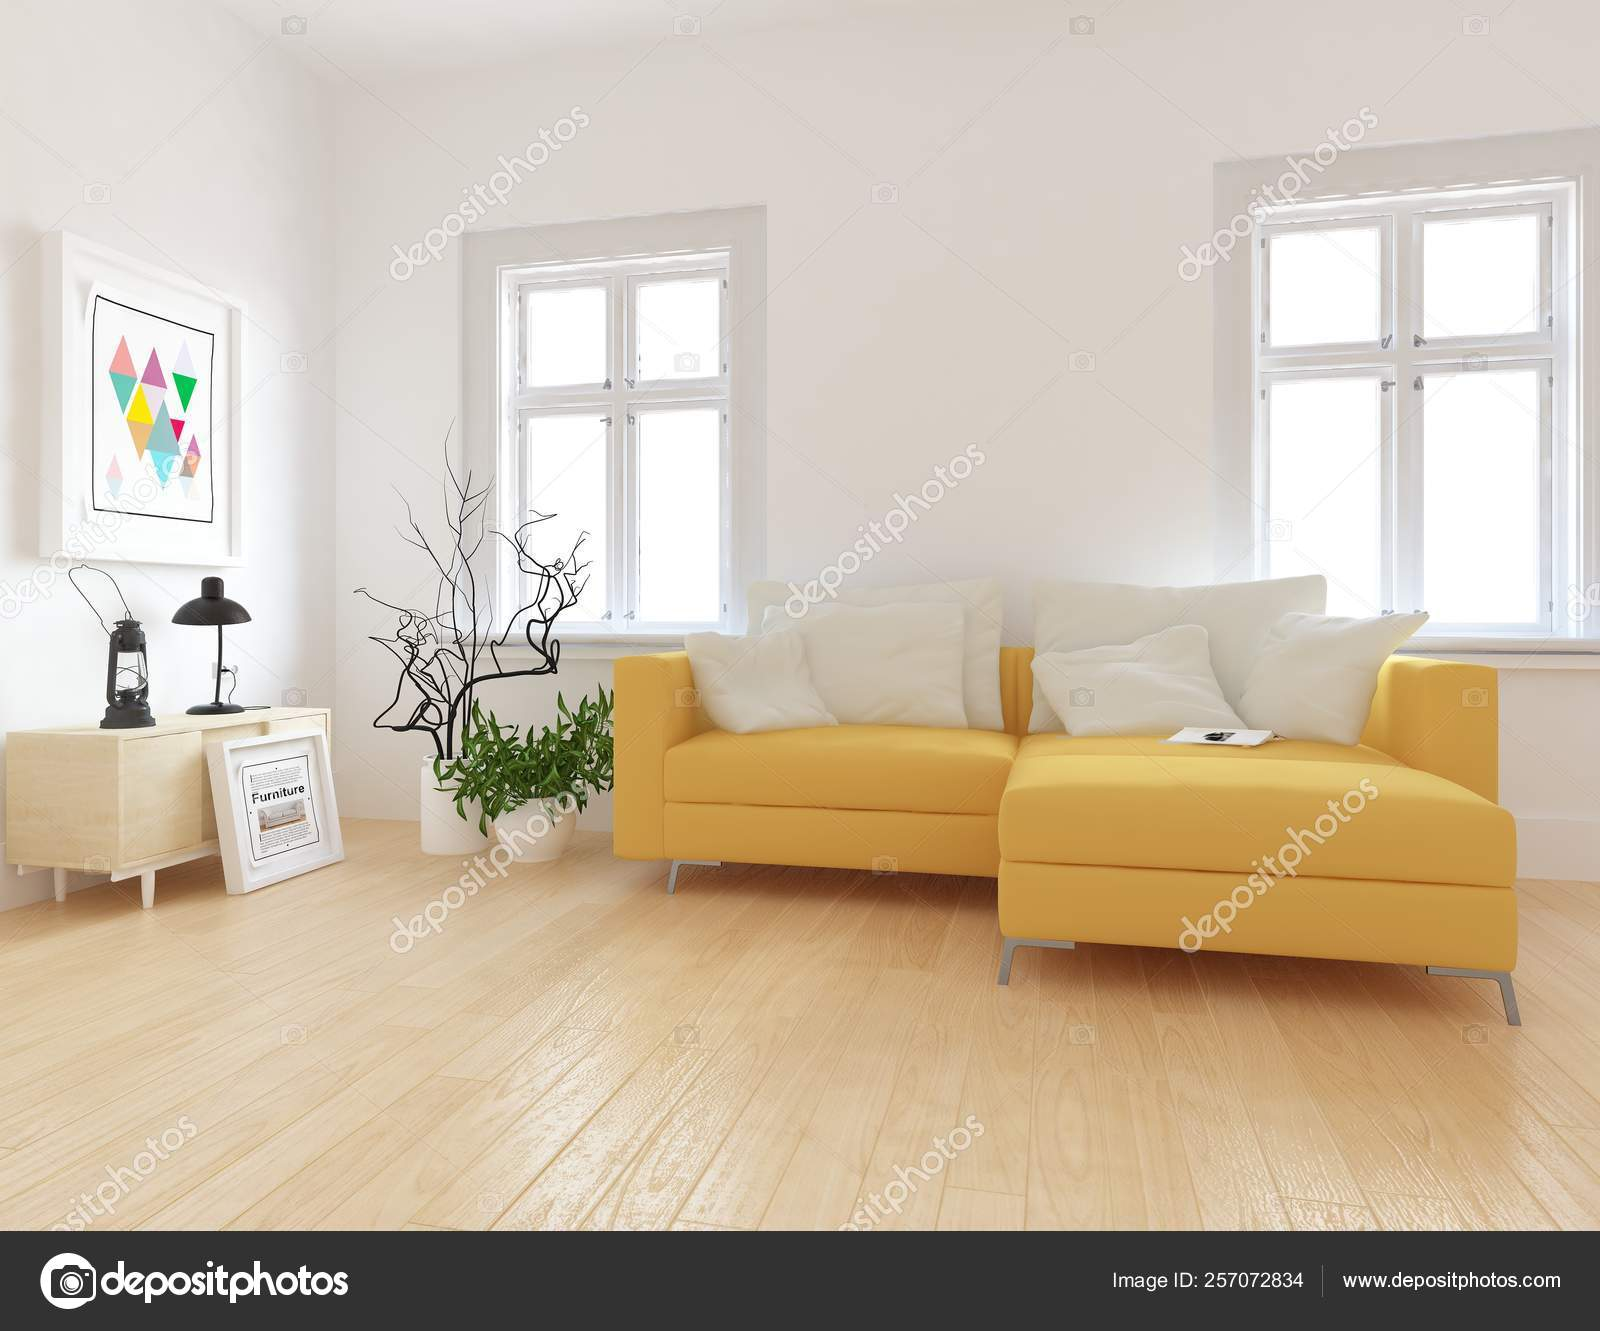 génial  Mot-Clé Idea of scandinavian living room interior with sofa, on the wooden floor  and decor. Home nordic interior. 32D illustration 2570728324